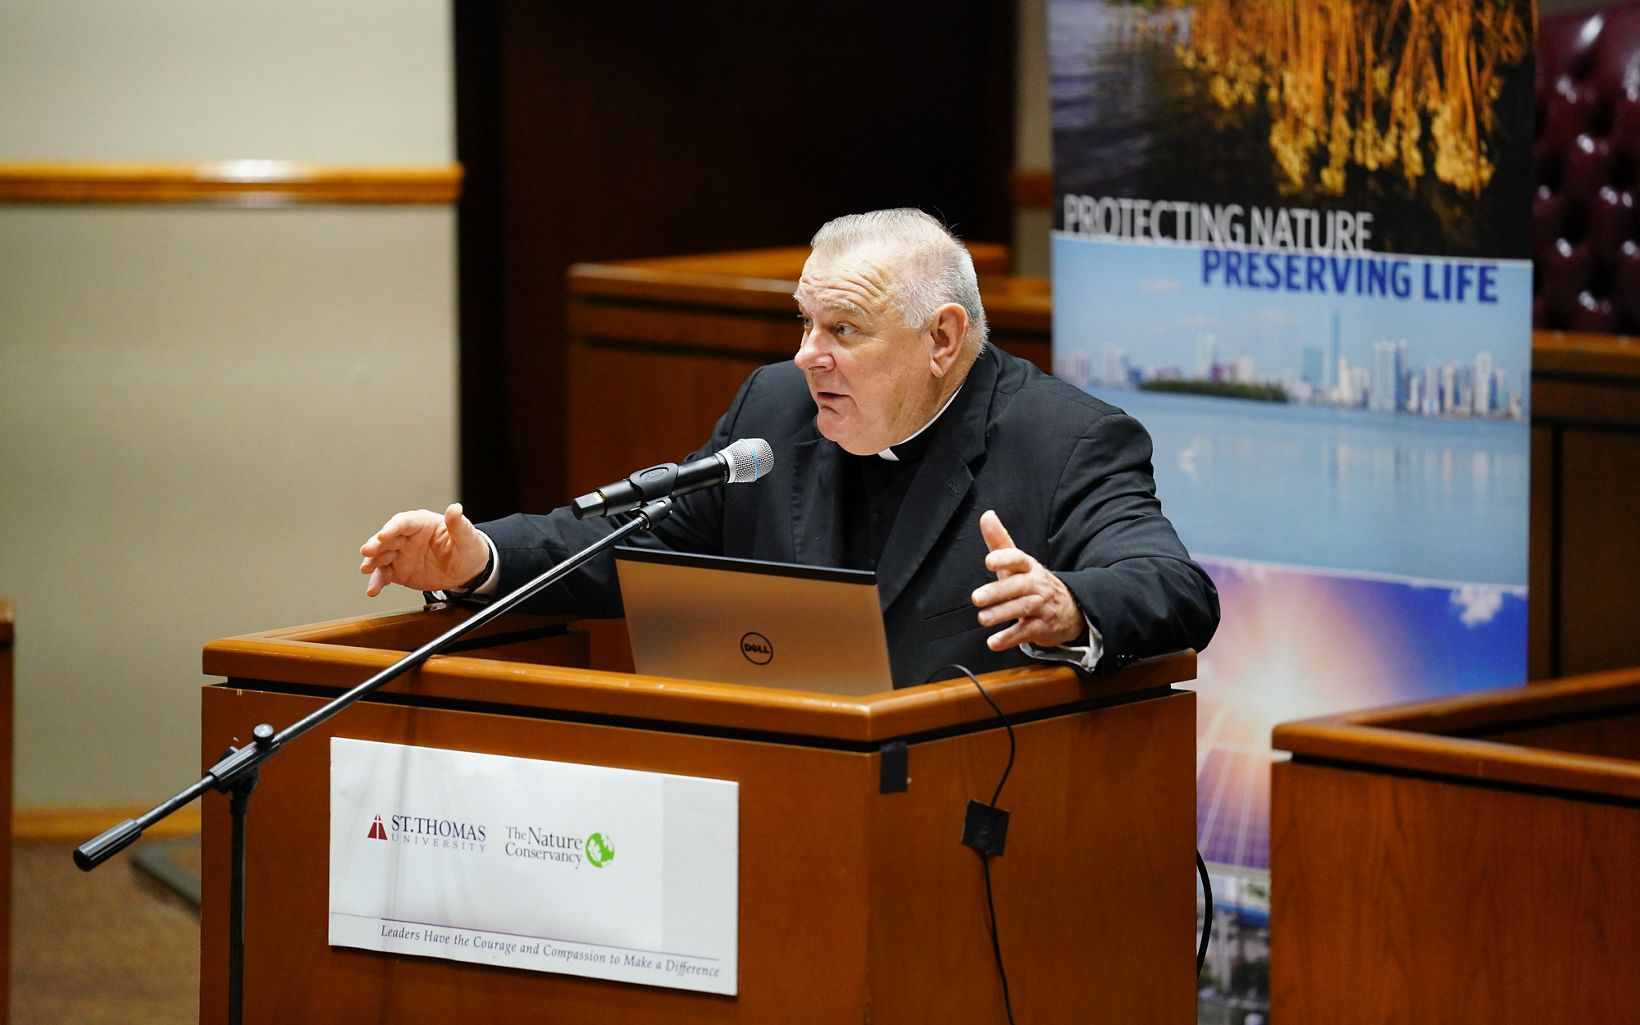 The Archbishop of Miami, addresses the conference attendees.